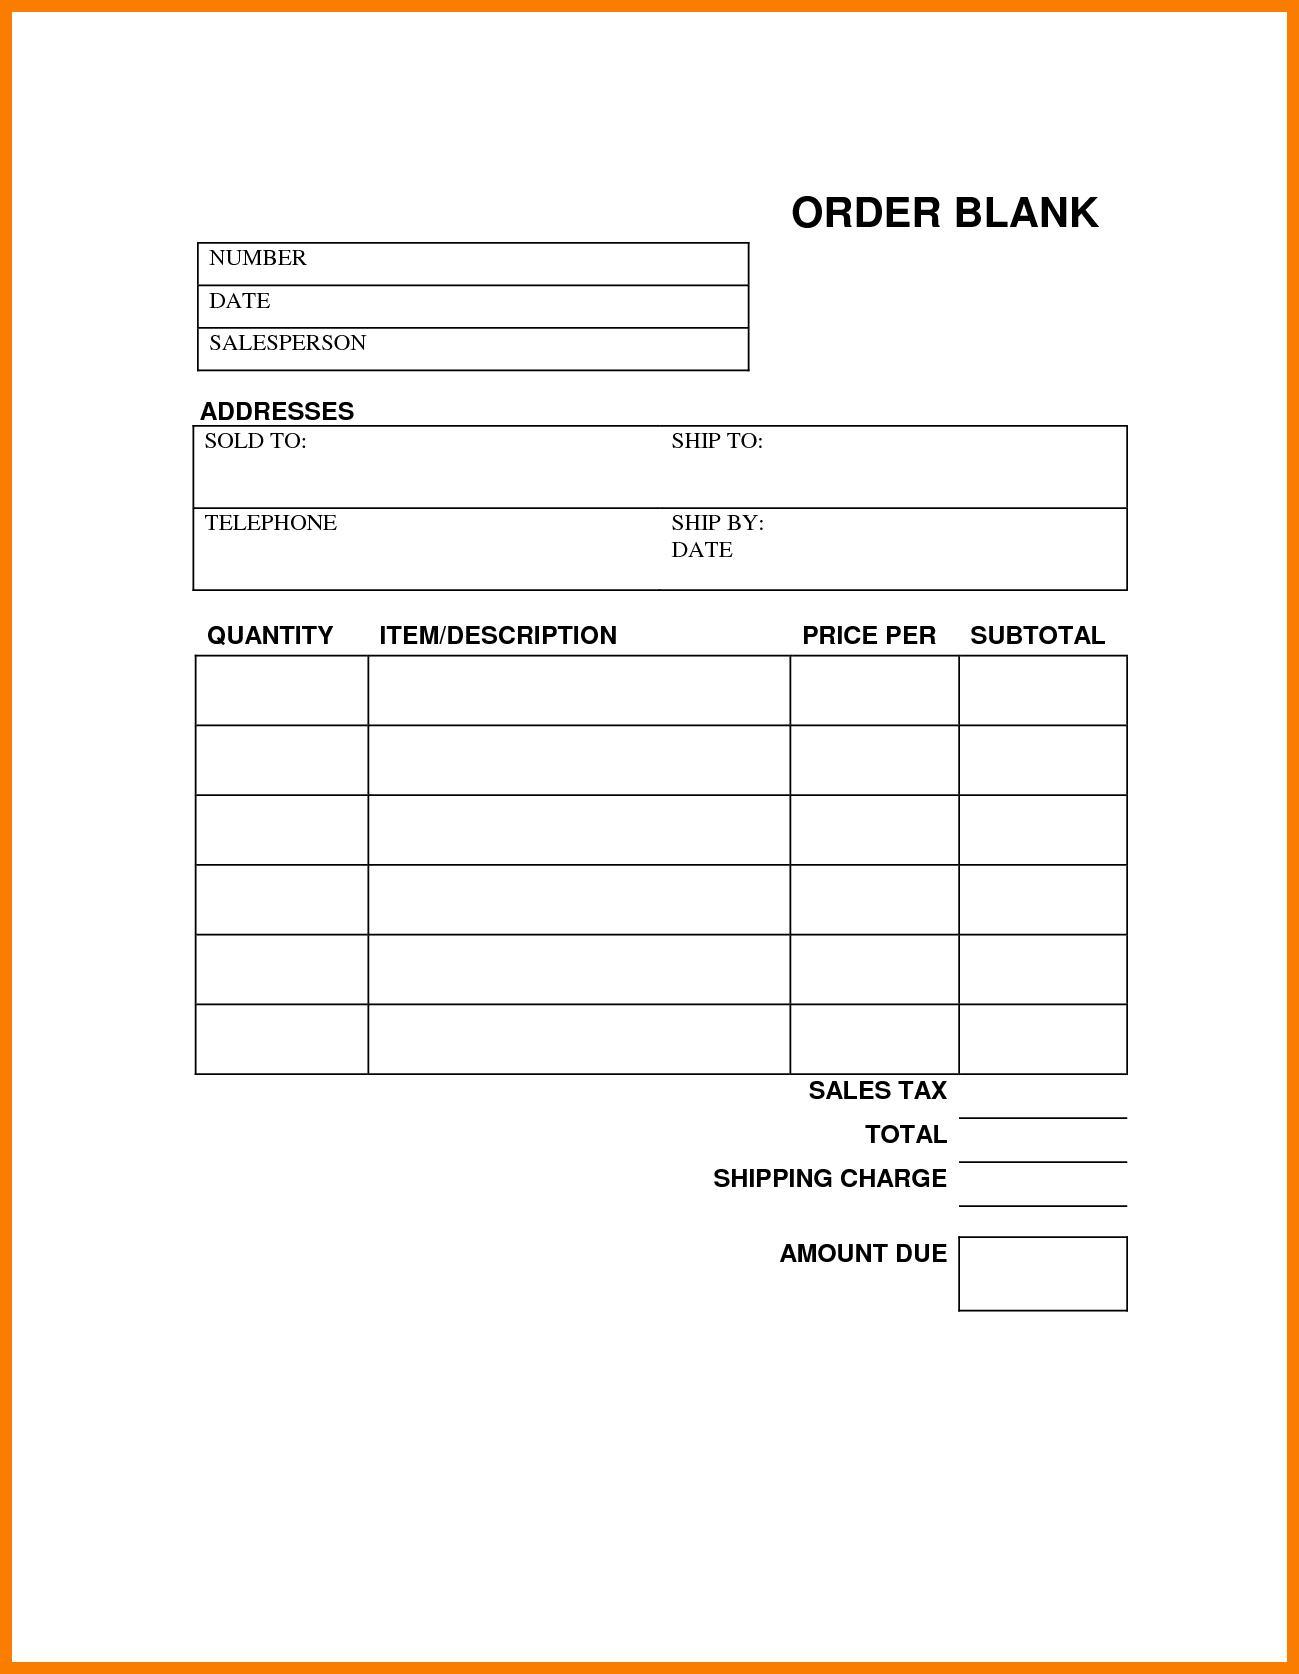 Blank Order Form Printable | charlotte clergy coalition